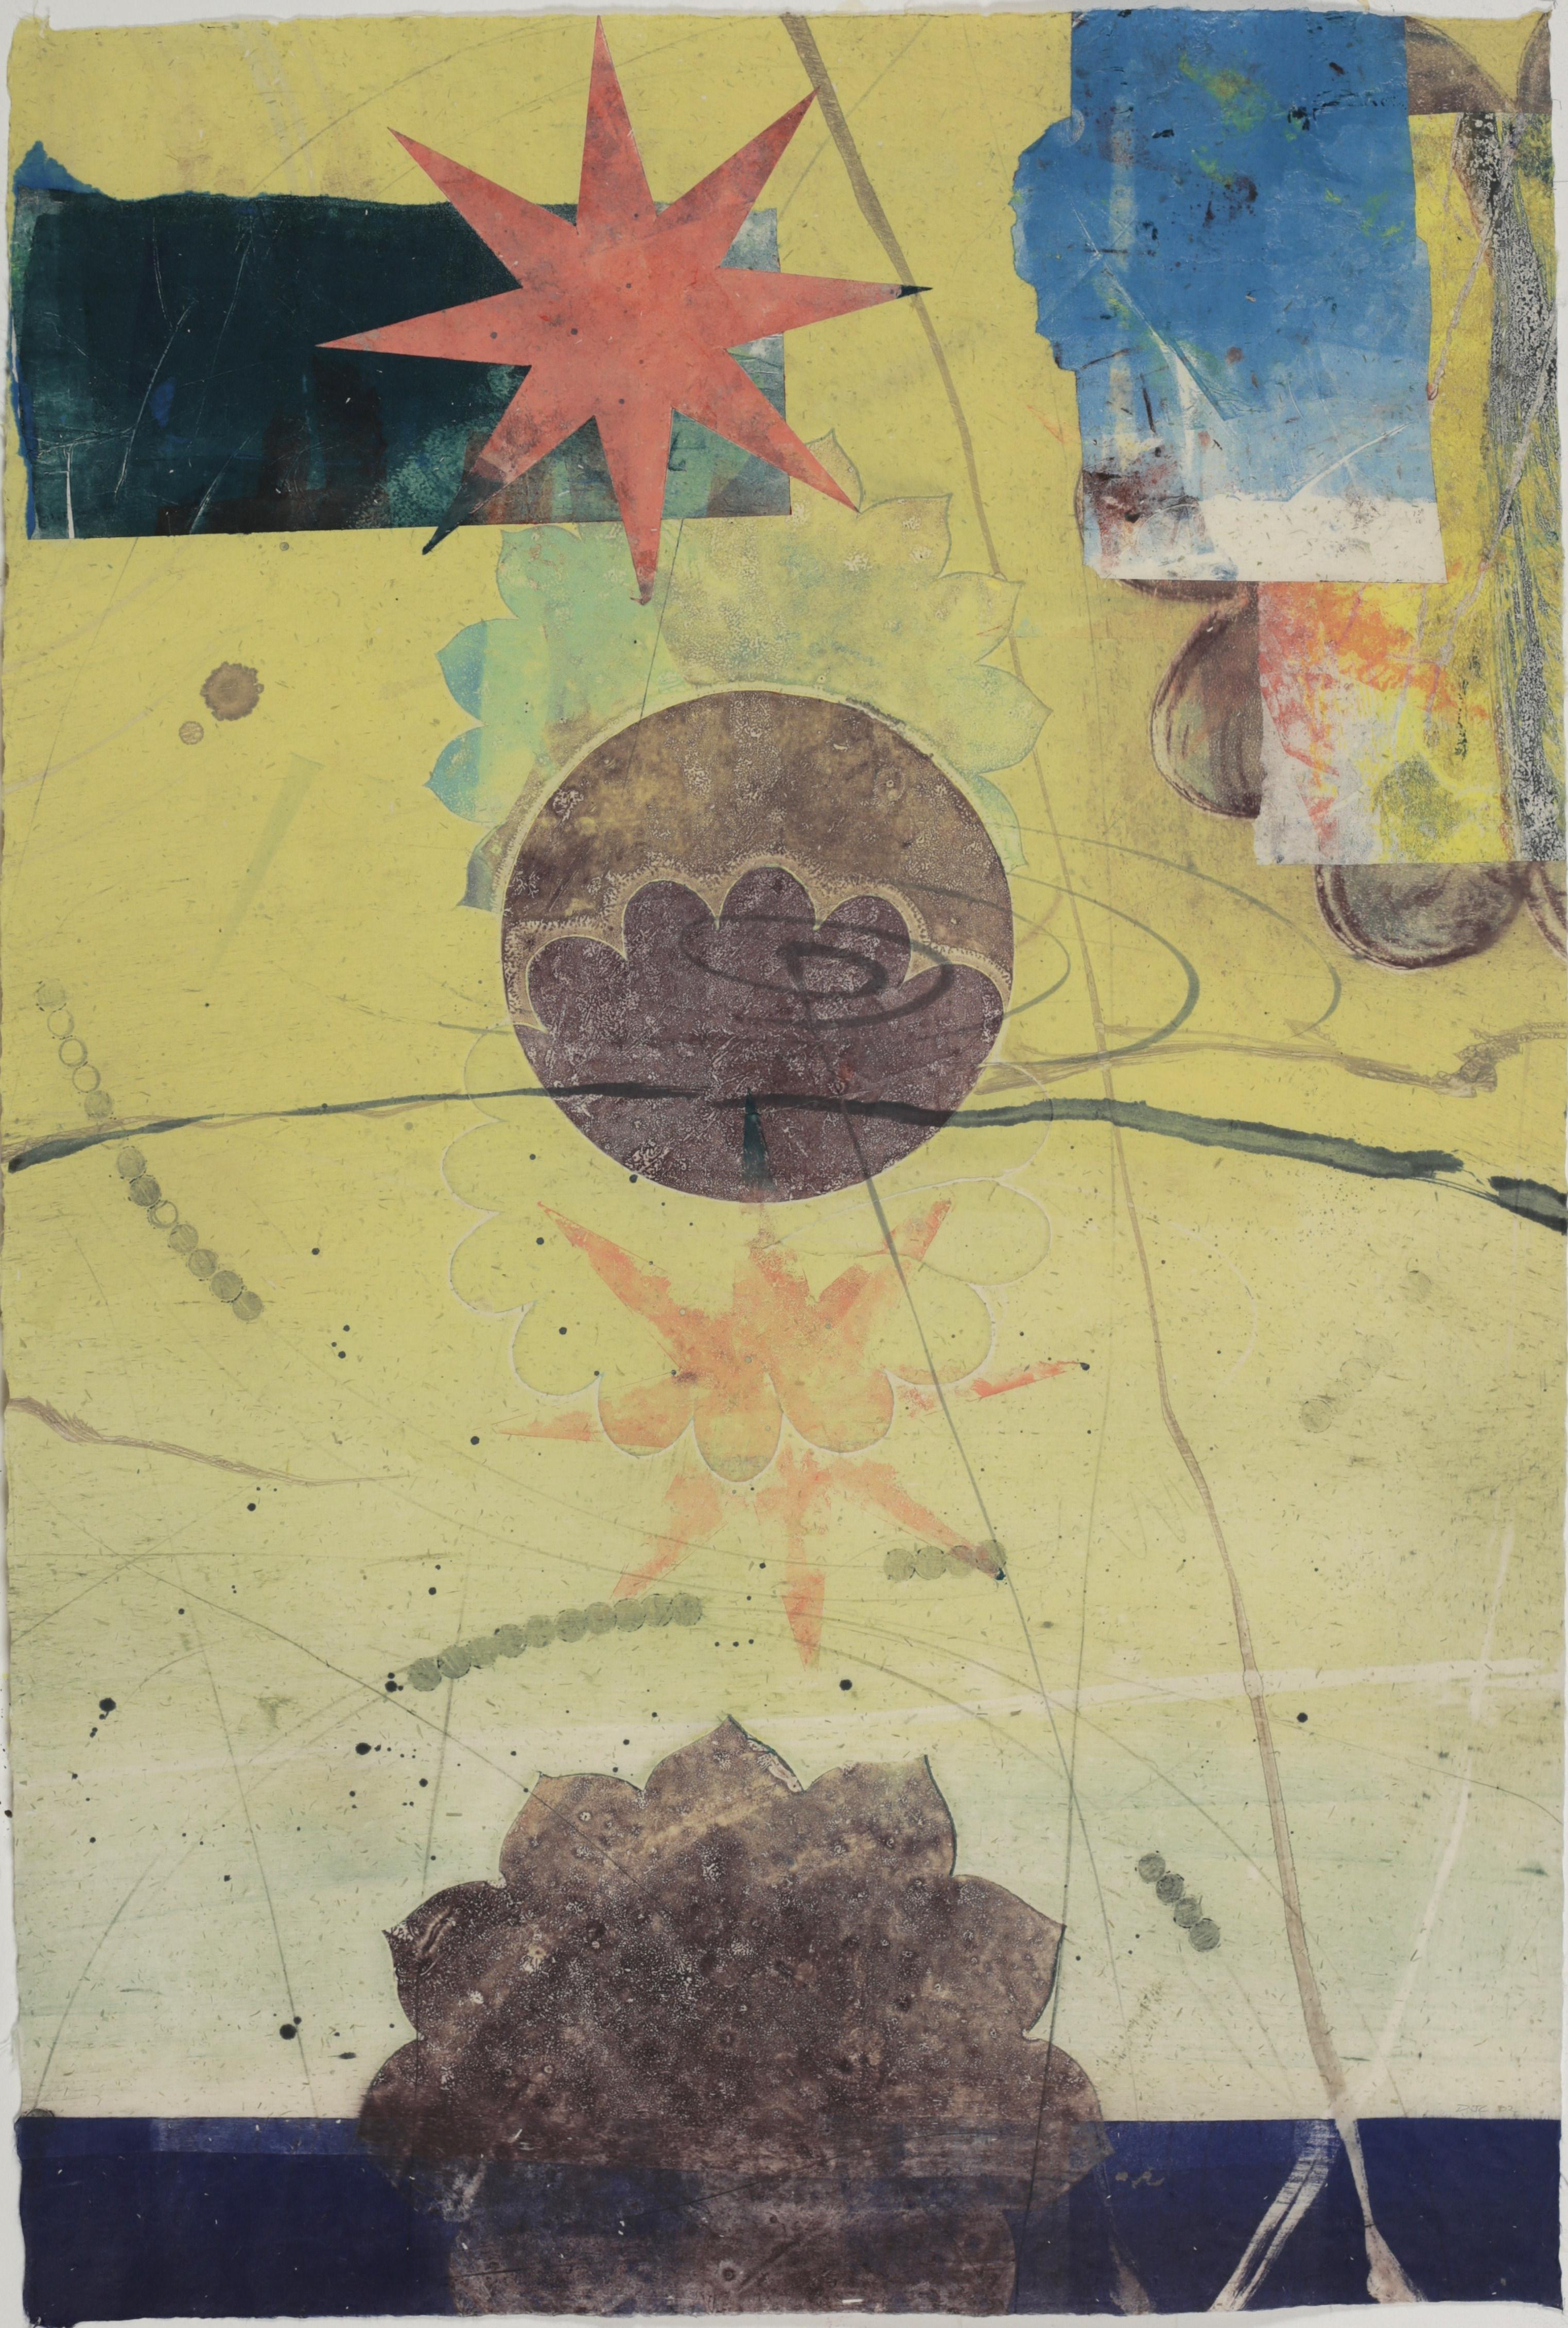 Pilot 35, Vertical Abstract Monotype in Yellow, Blue, Coral Star, Circle, Flower